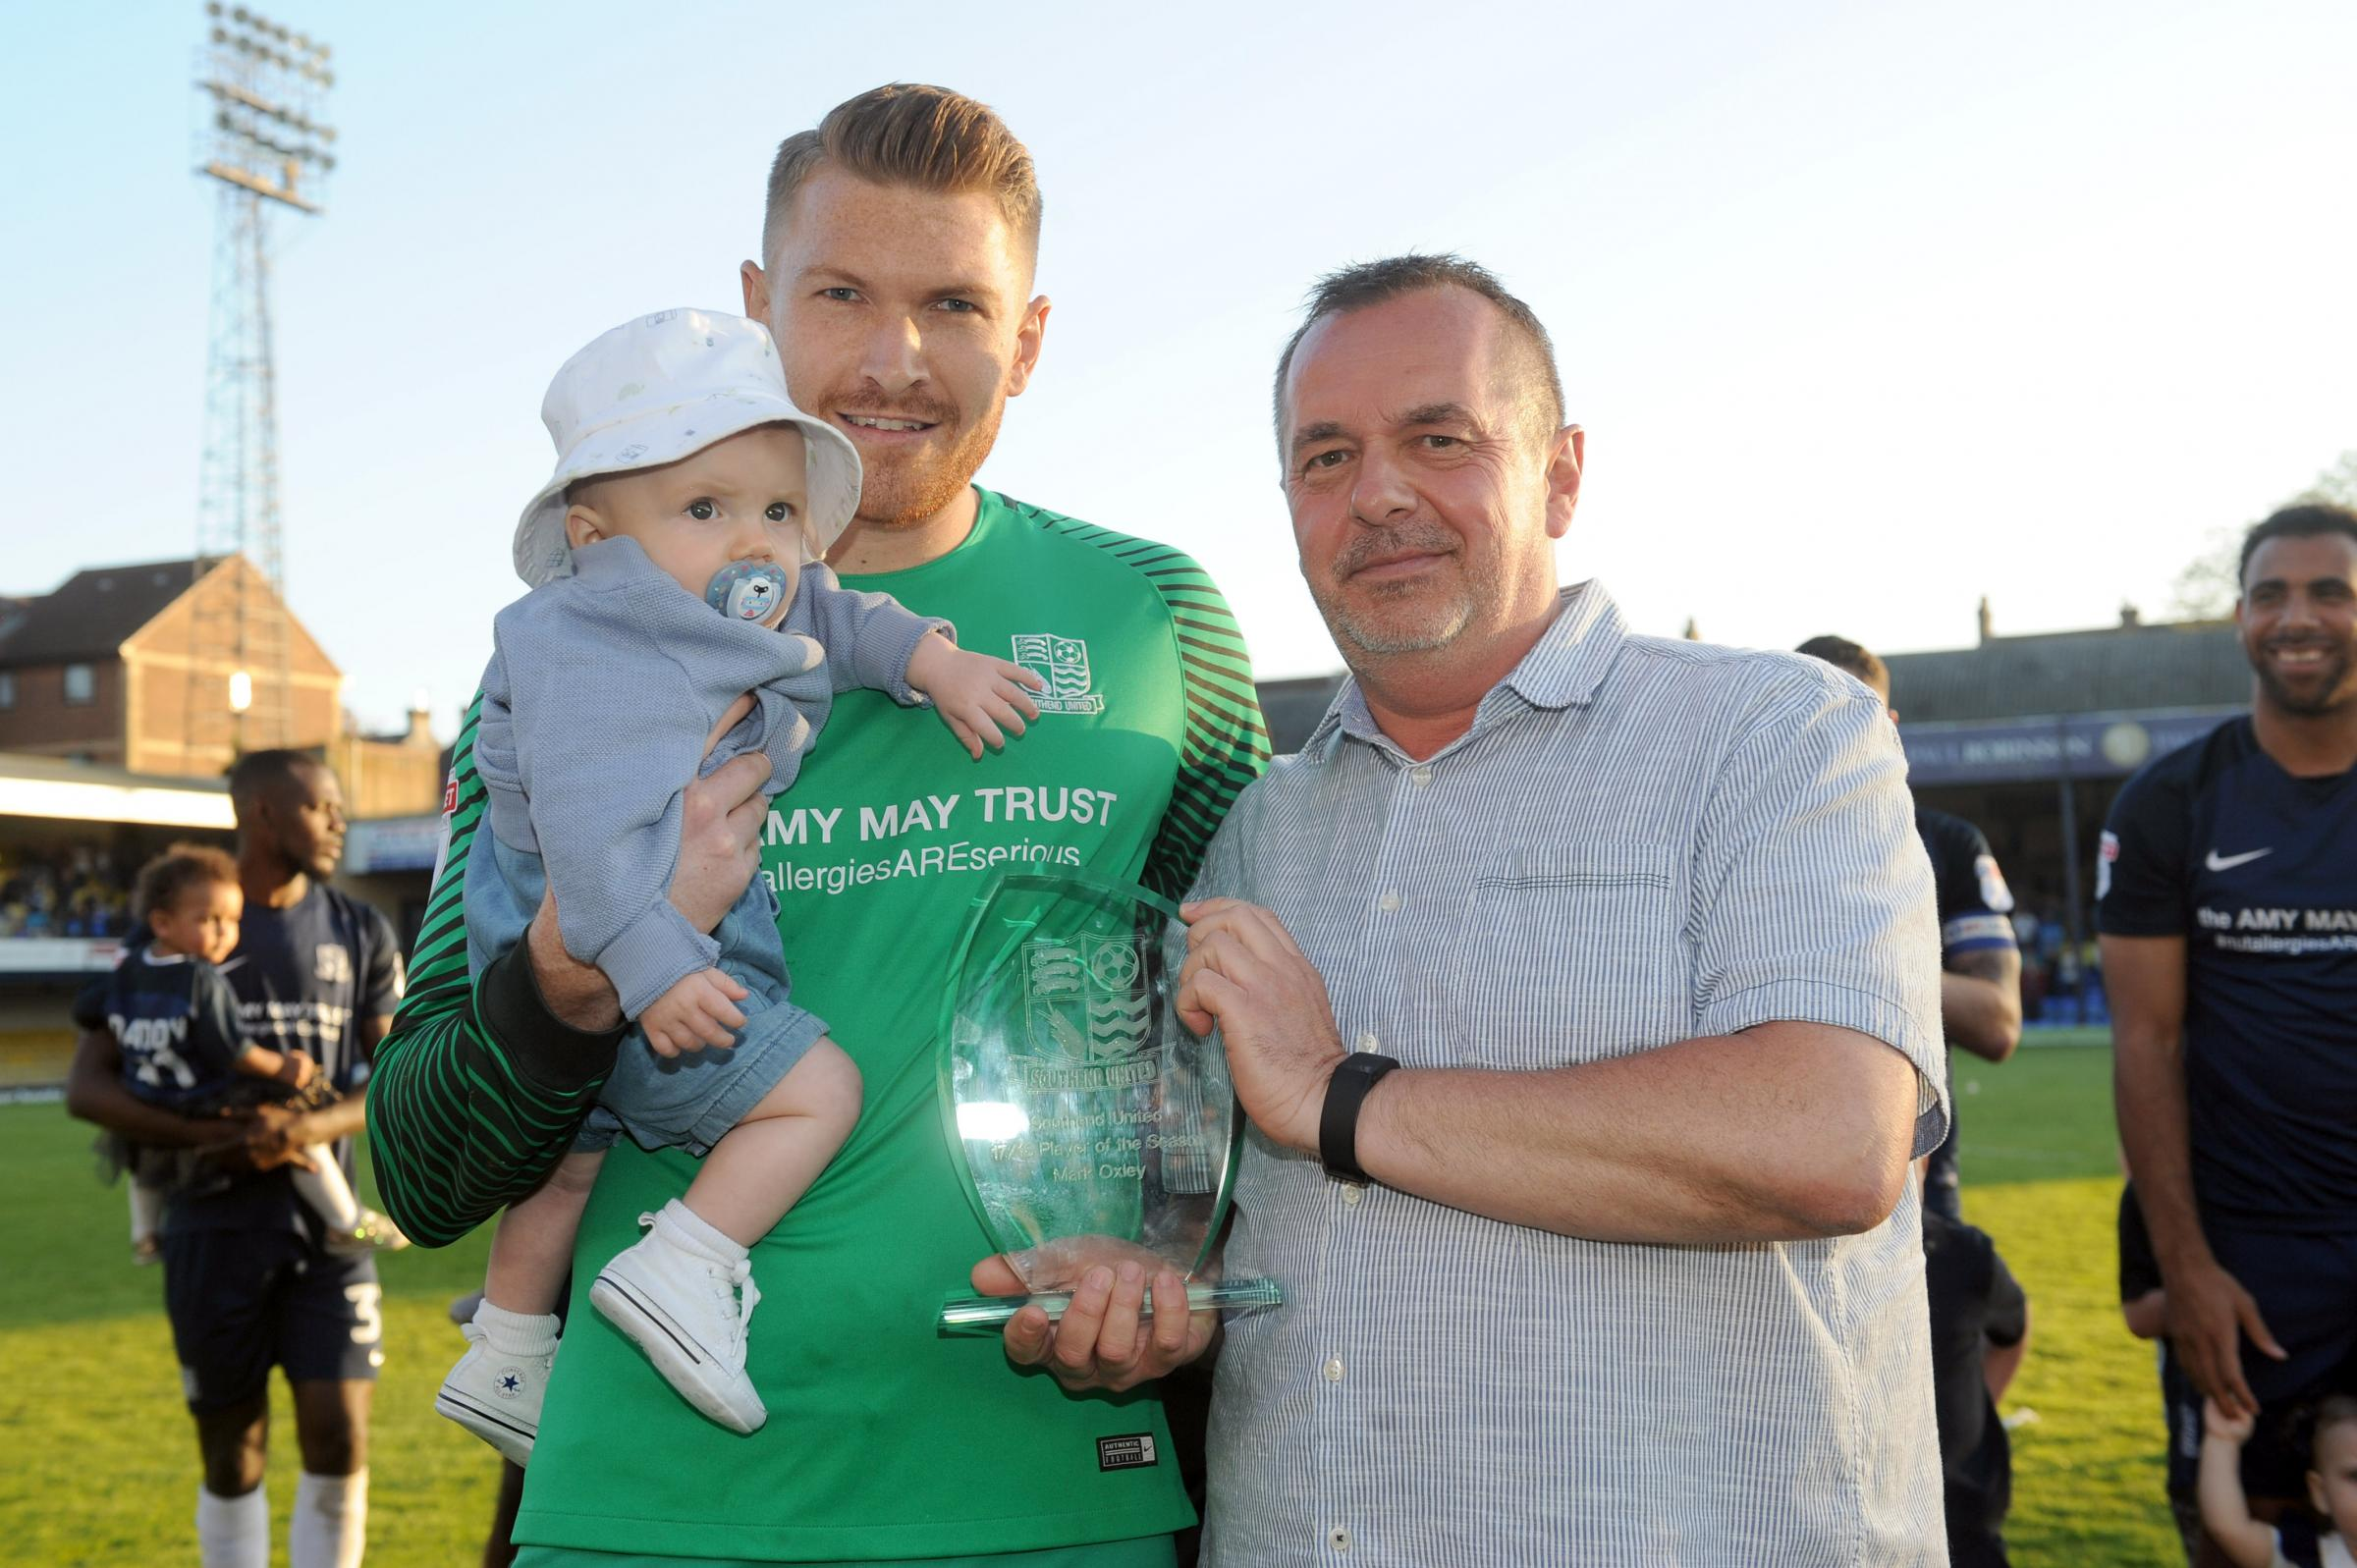 Key performer - Mark Oxley was named Southend United's player of the year